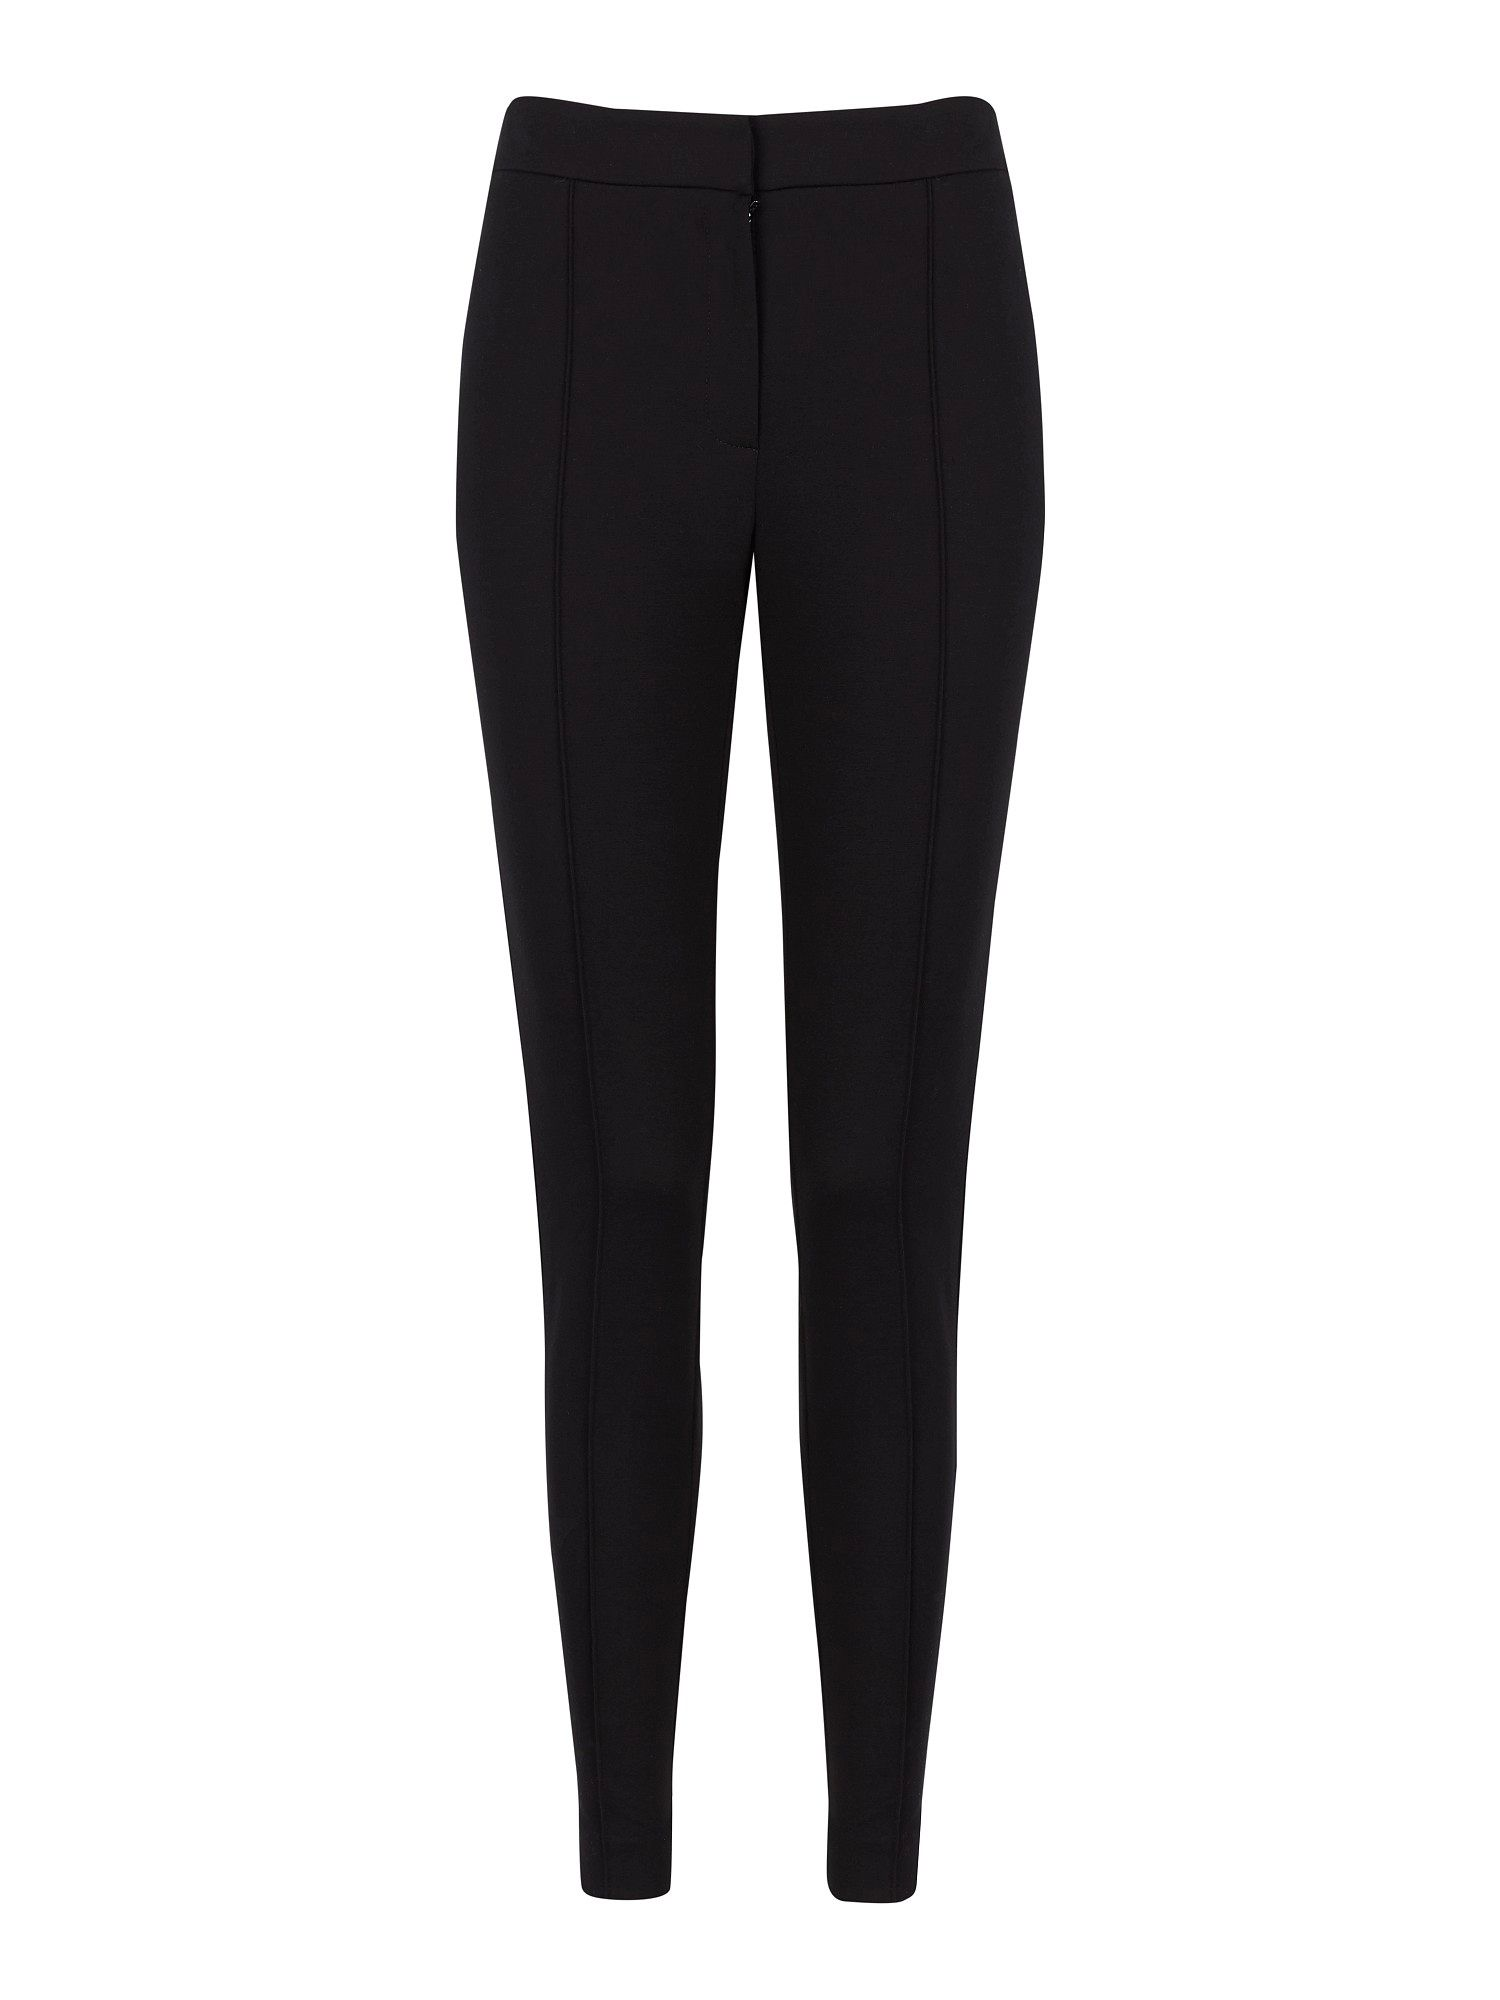 Black straight leg fitted leggings